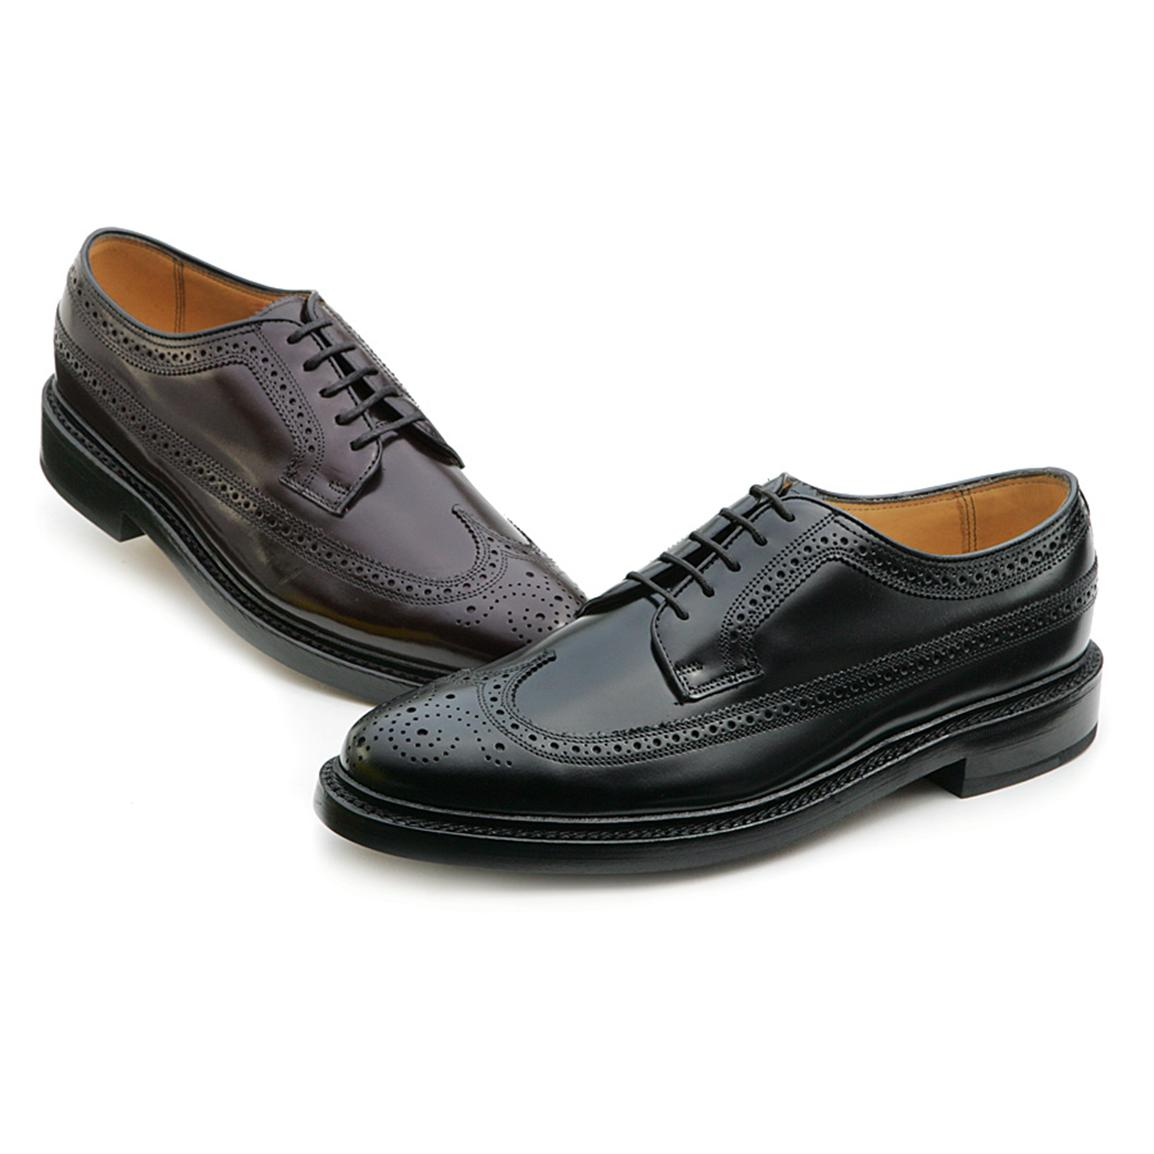 What Are Wingtip Dress Shoes